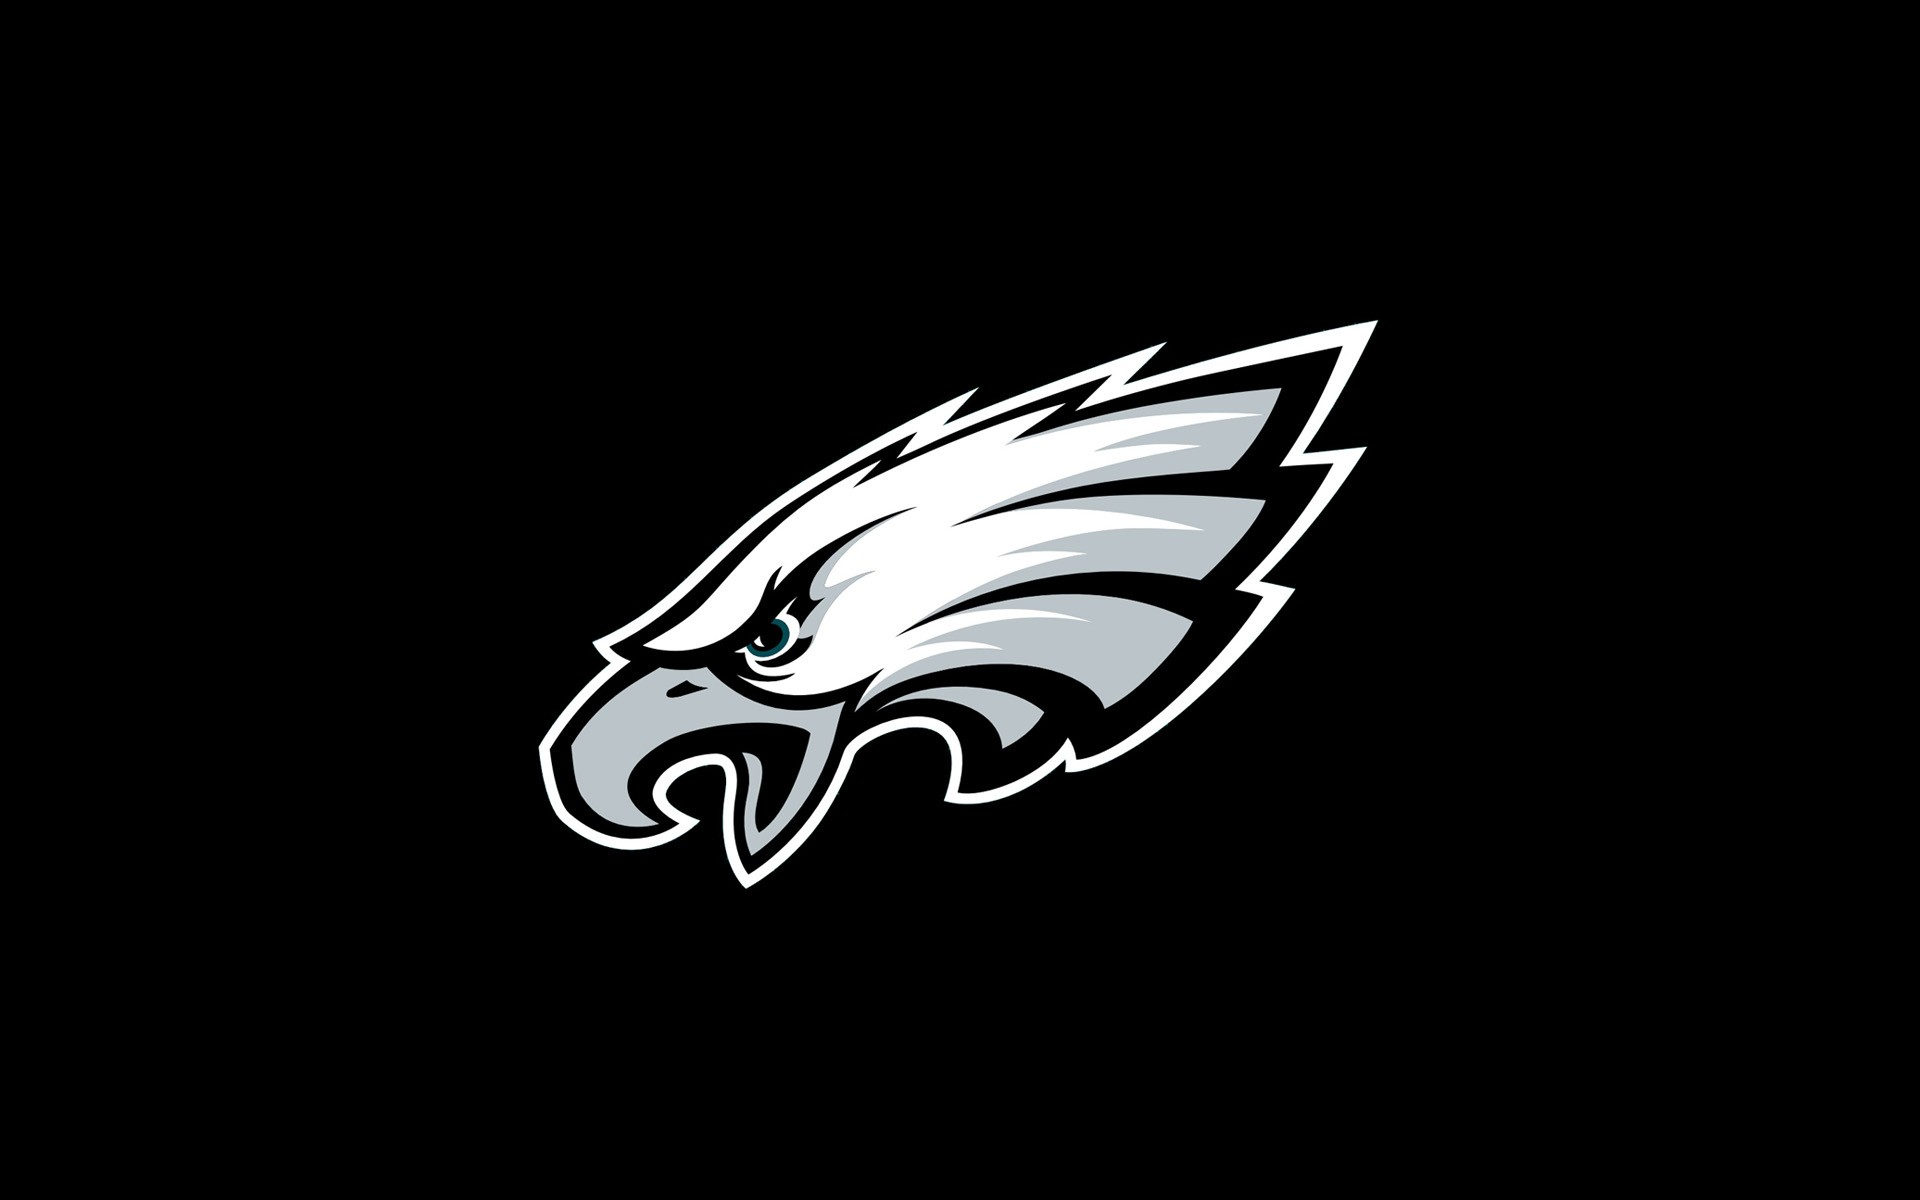 10 Hd Philadelphia Eagles Wallpapers